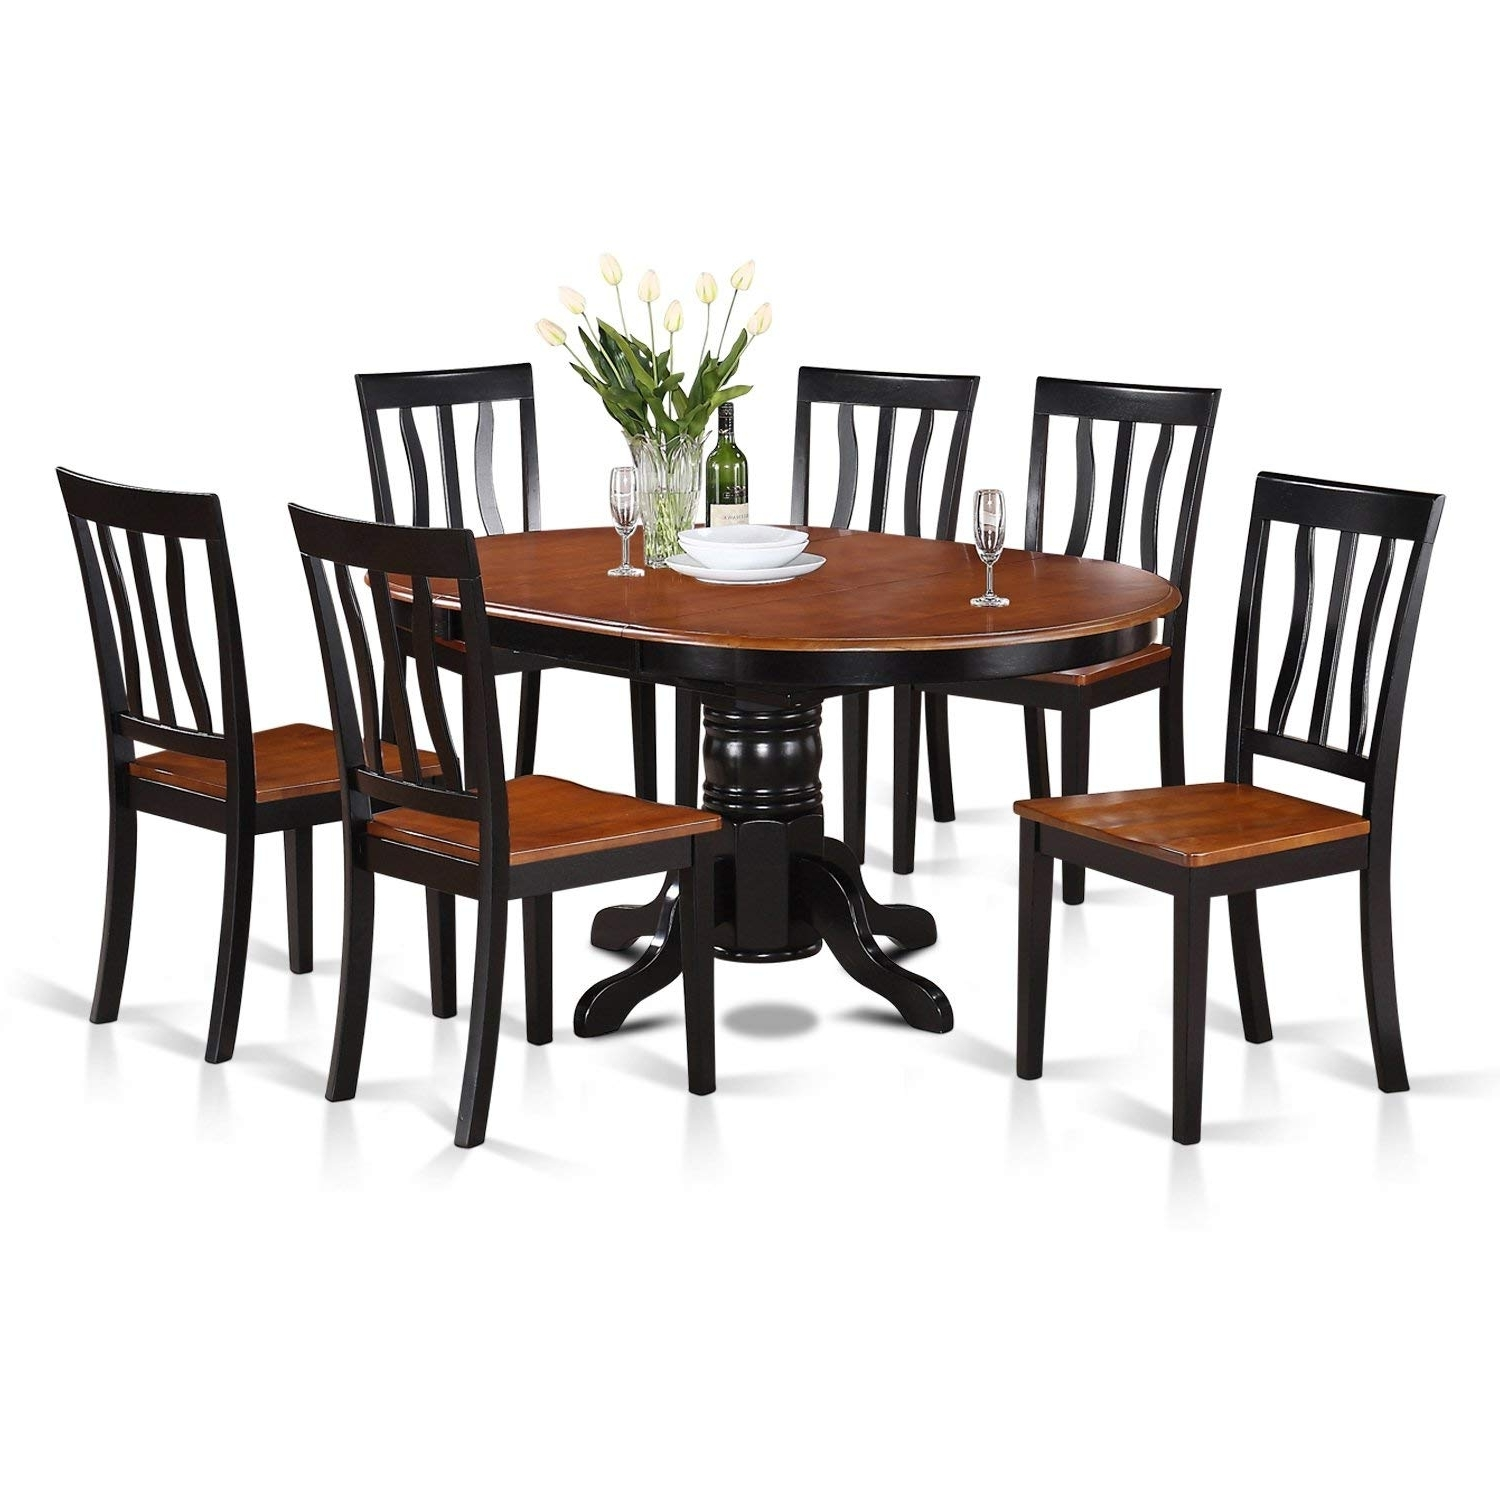 Favorite Amazon: East West Furniture Avat7 Blk W 7 Piece Dining Table Set Regarding Jaxon 7 Piece Rectangle Dining Sets With Upholstered Chairs (View 9 of 25)